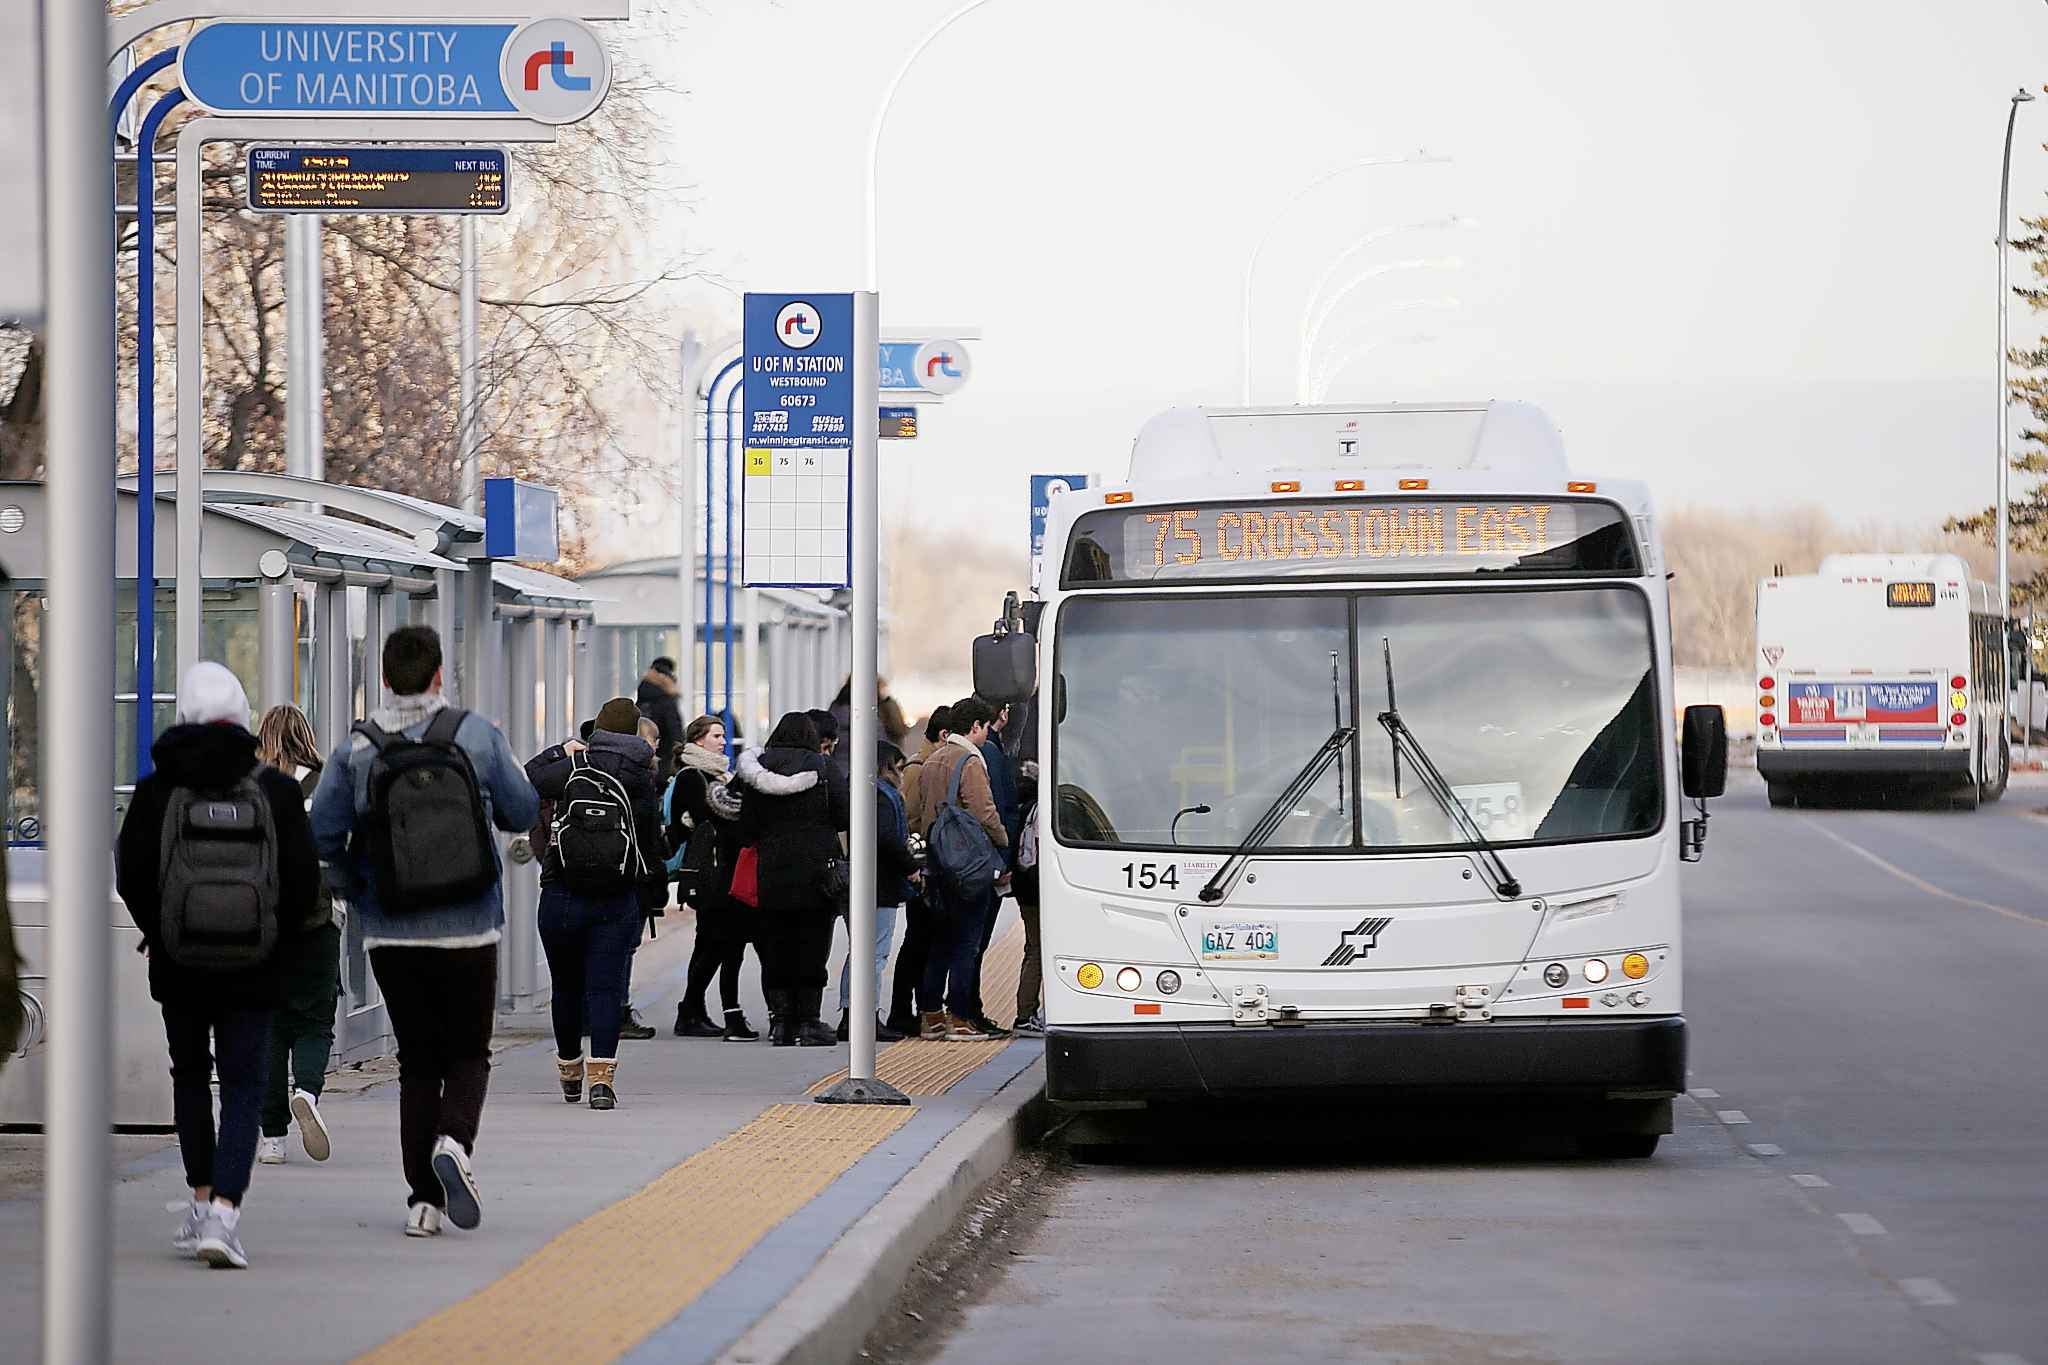 The union says the city must do more to clean buses during the COVID-19 outbreak. (John Woods / Winnipeg Free Press files)